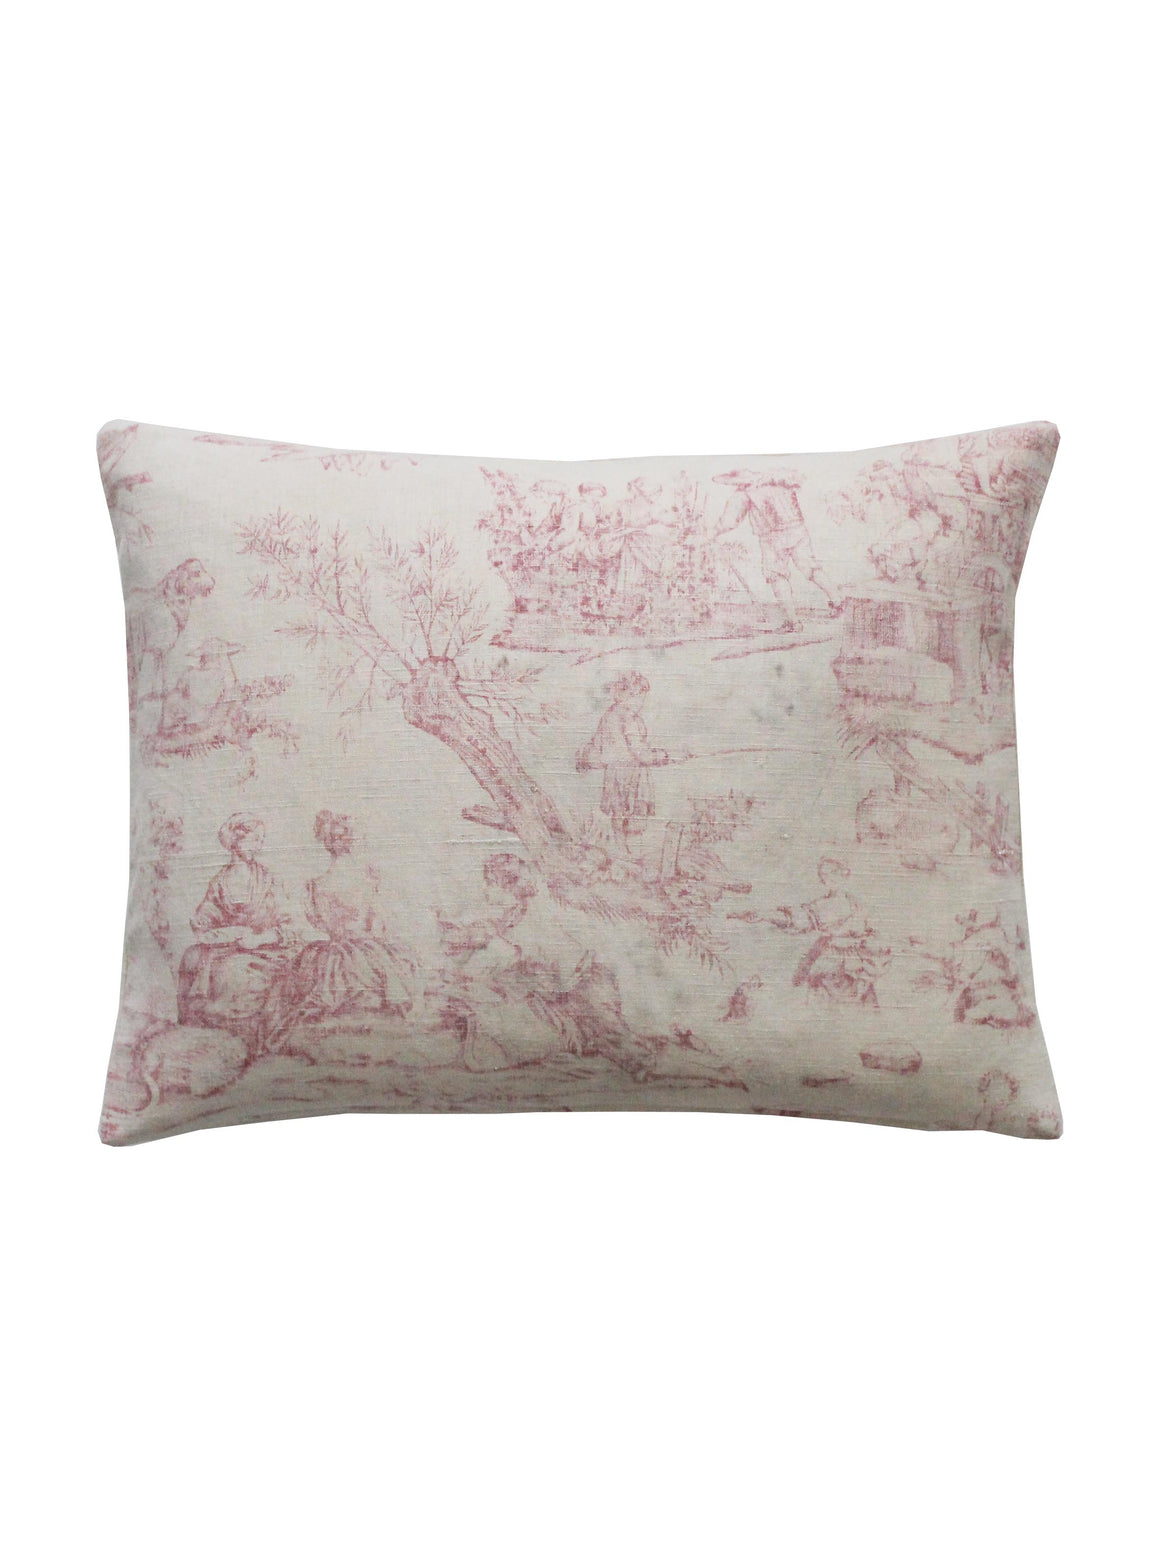 Pink Toile Square Cushion